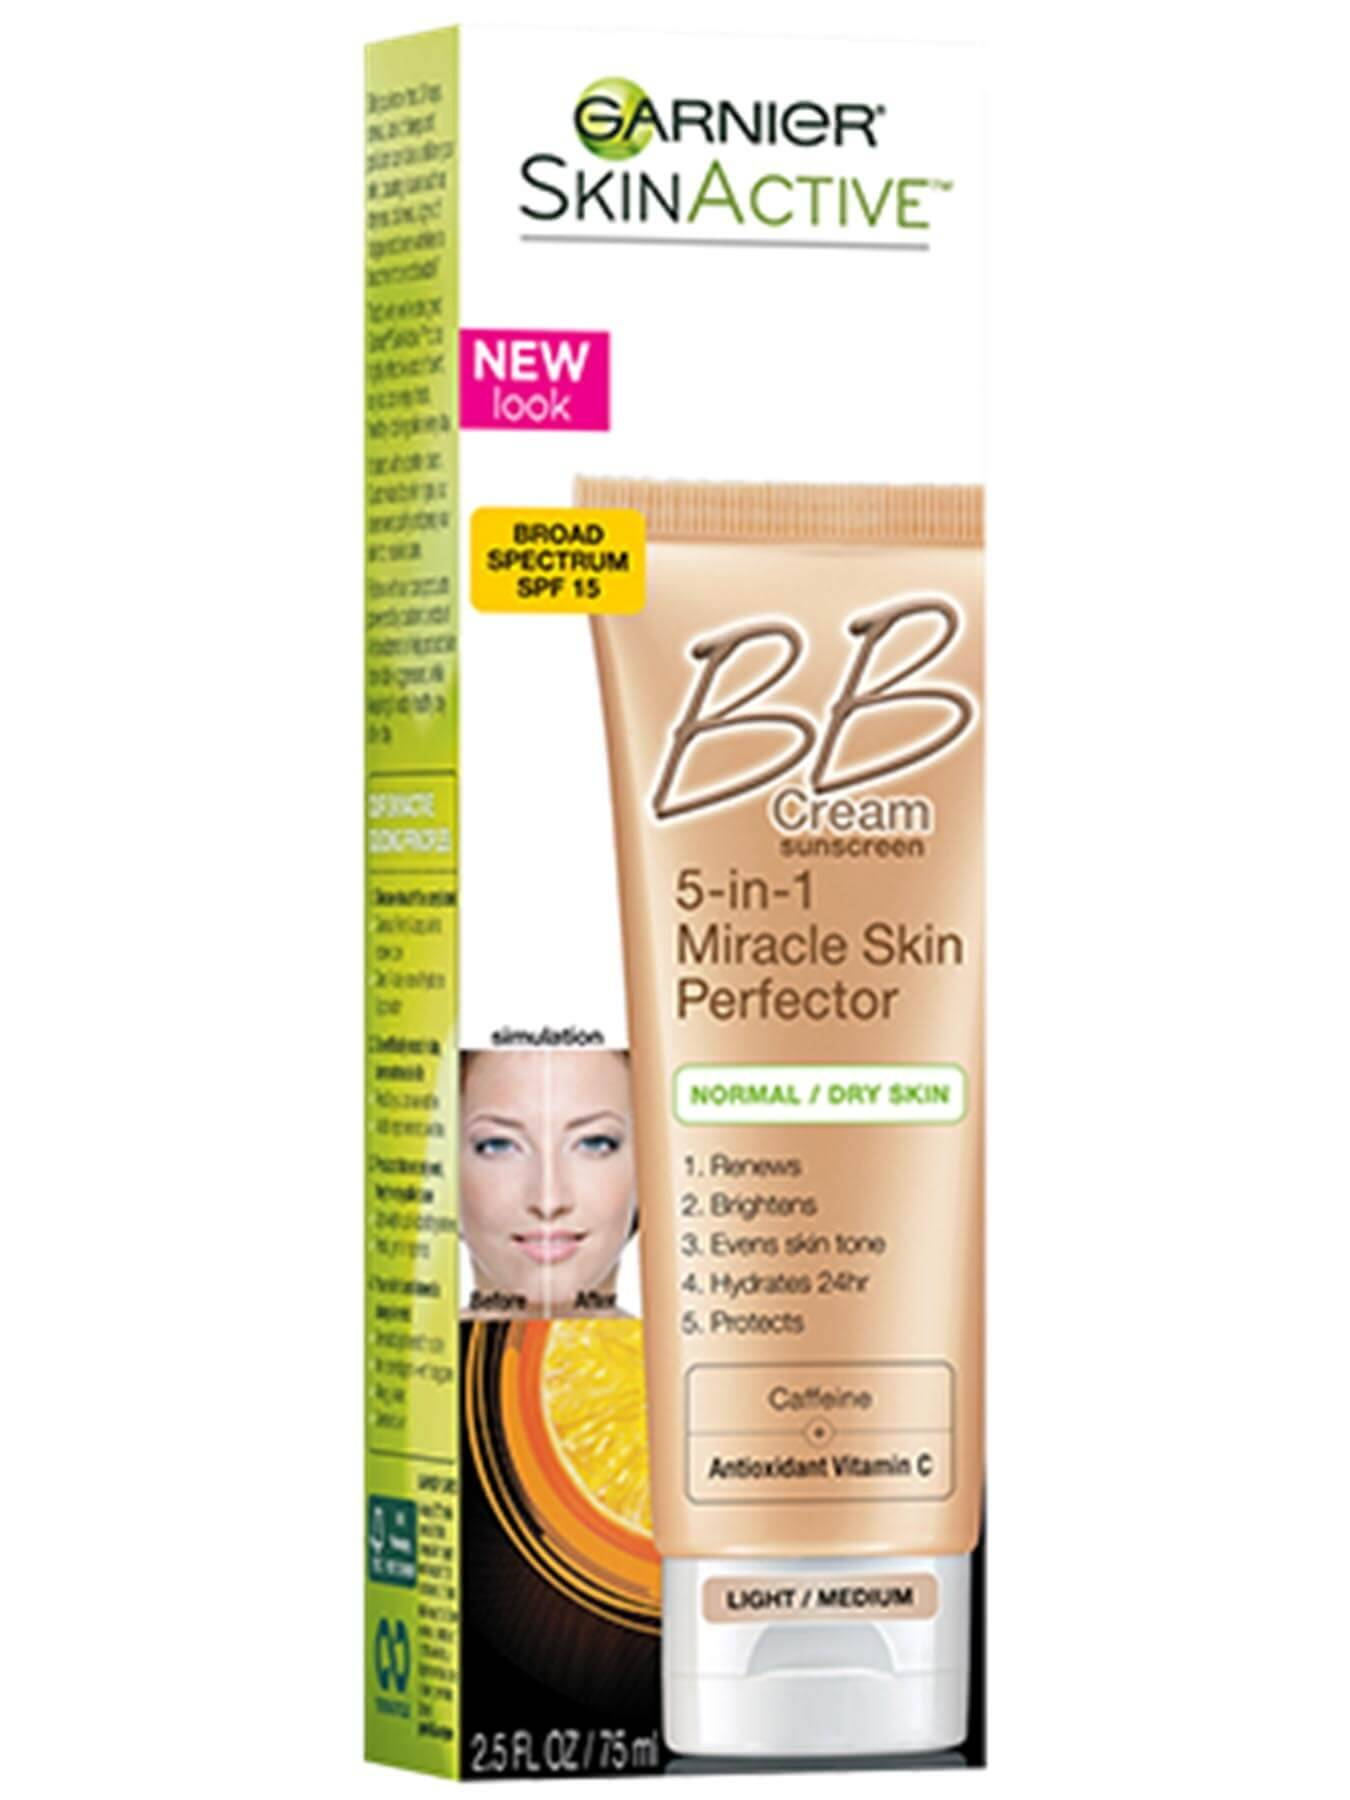 Front view of 5-in-1 Miracle Skin Perfector BB Cream - Light/Medium box.